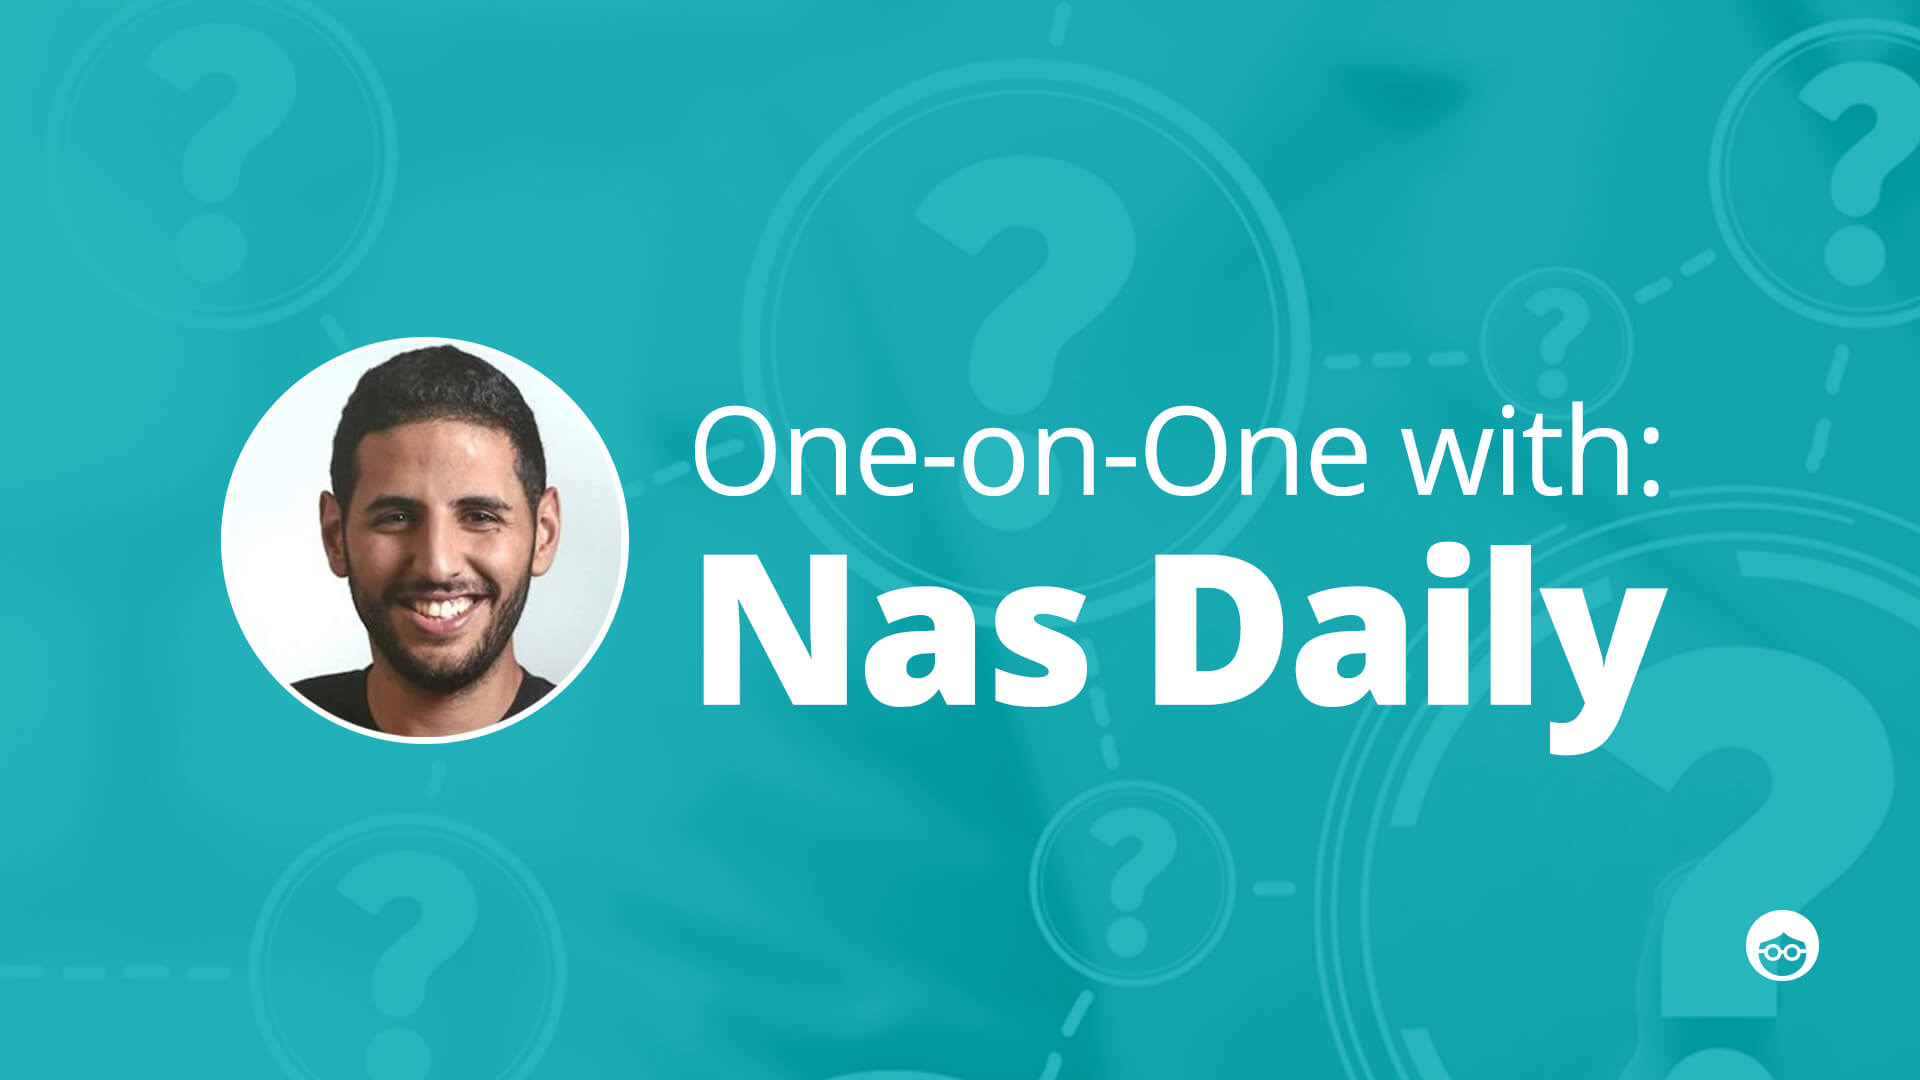 Conversation with Nas Daily: 1:1 with the Internet Video Sensation